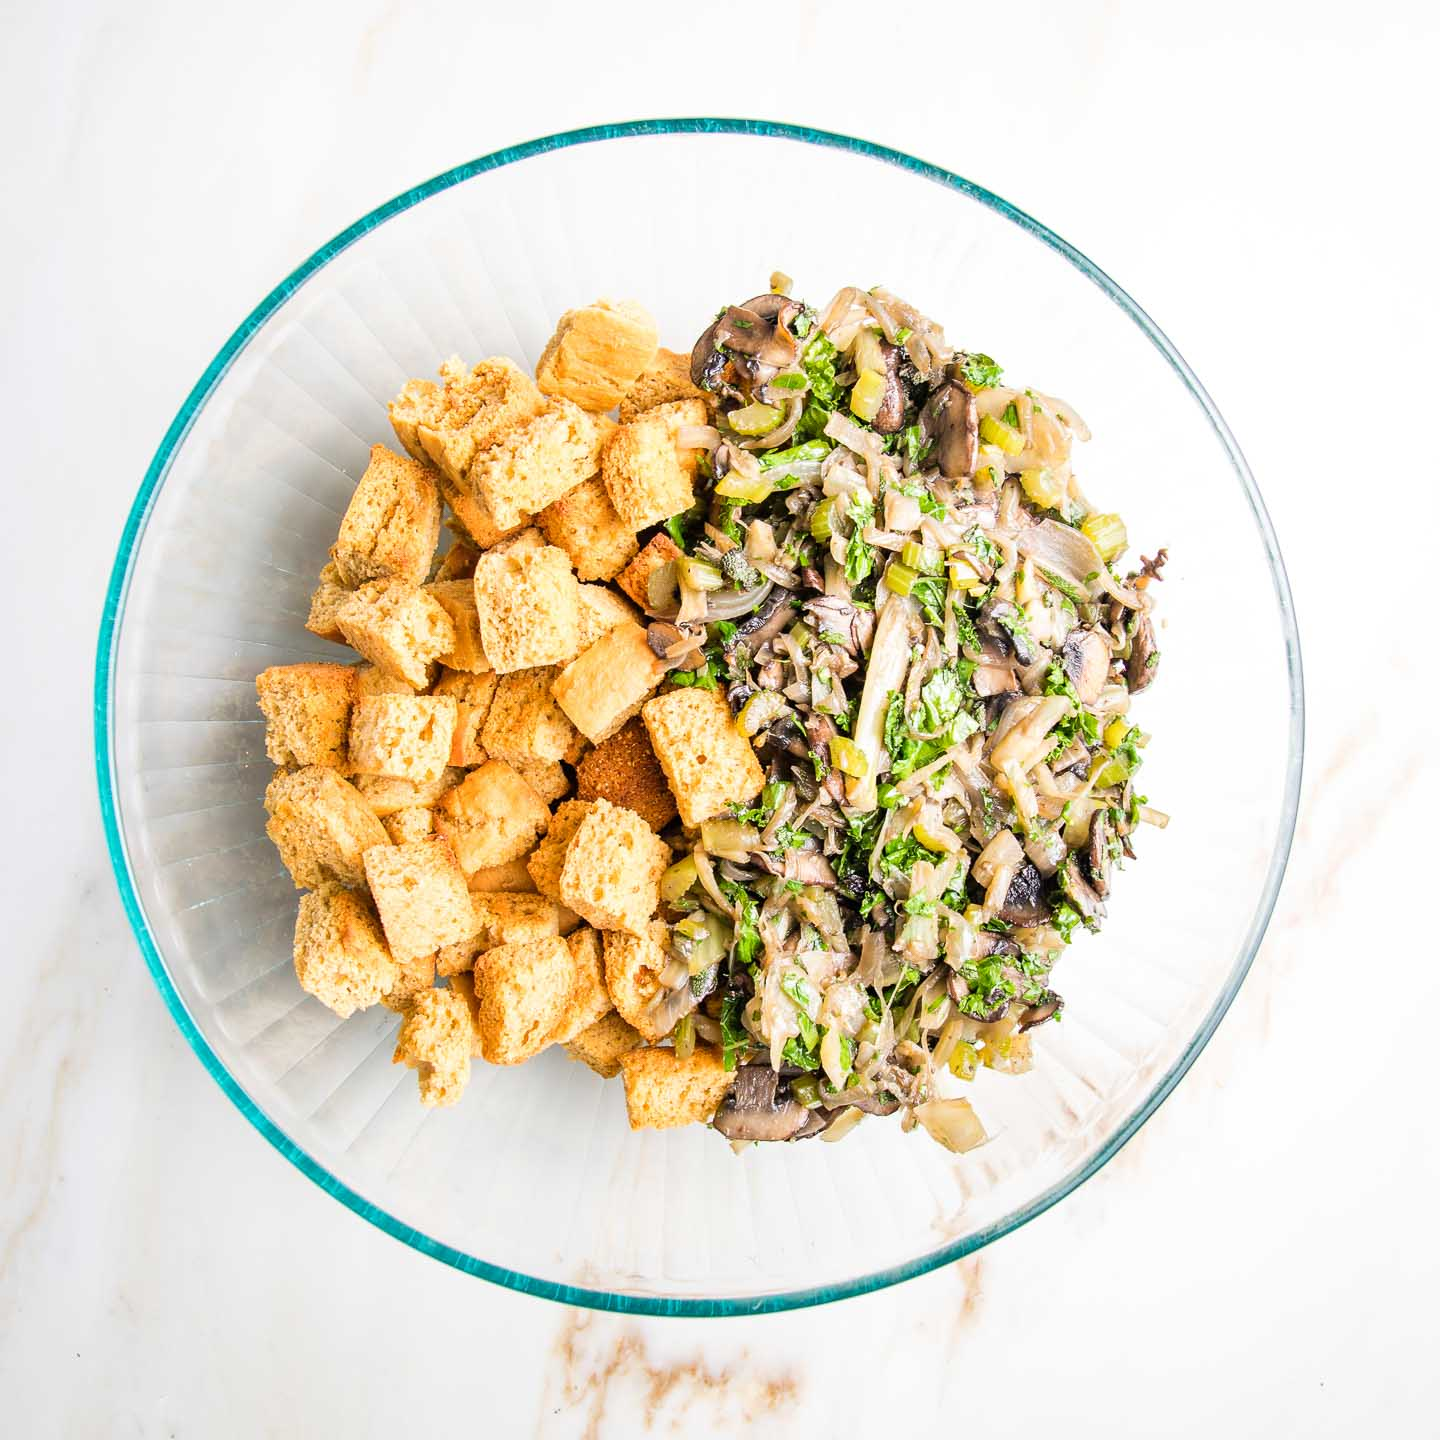 Cornbread croutons plus sauteed veggies and herbs in a large glass bowl.